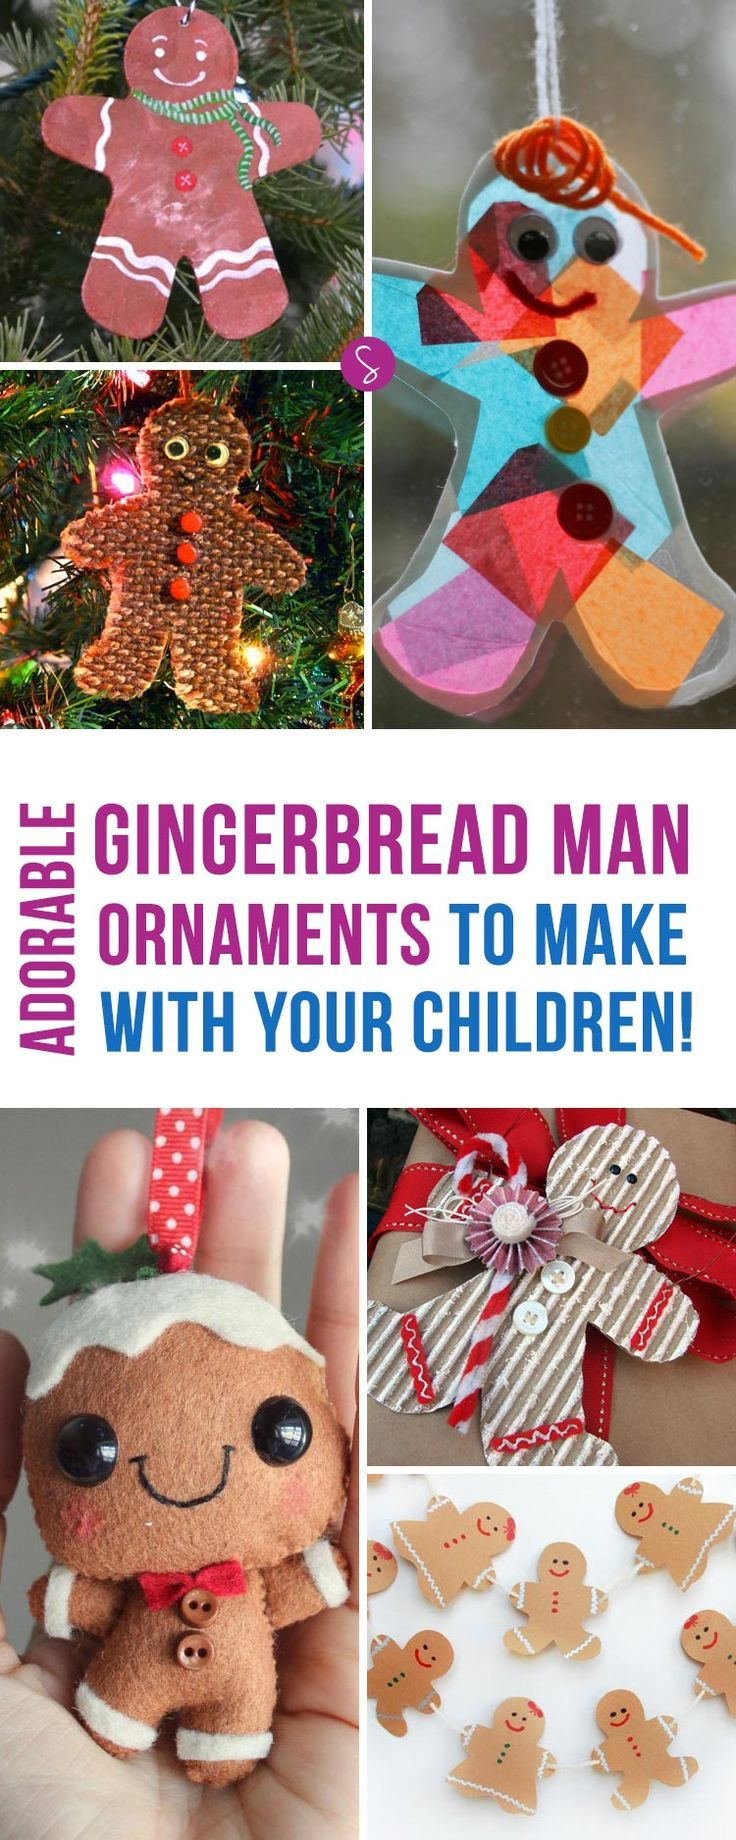 12 Stinking Cute Gingerbread Man Ornaments for